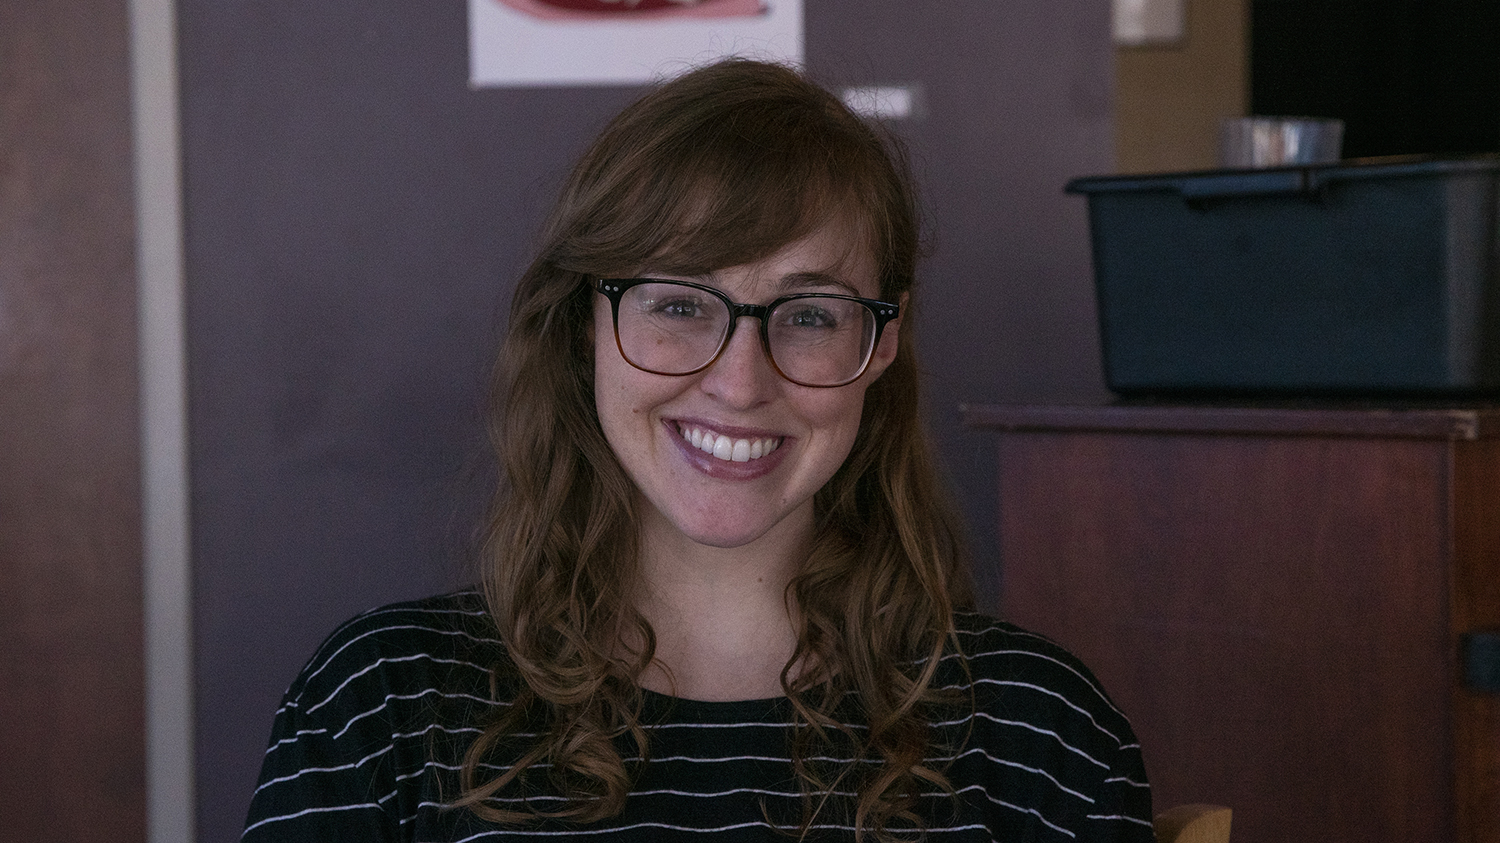 University of Iowa graduate Student Torie Burns is seen on Monday, August 26, 2019. The Graduate College has developed a new webinar series to support University of Iowa Graduate students apply for competitive national awards.